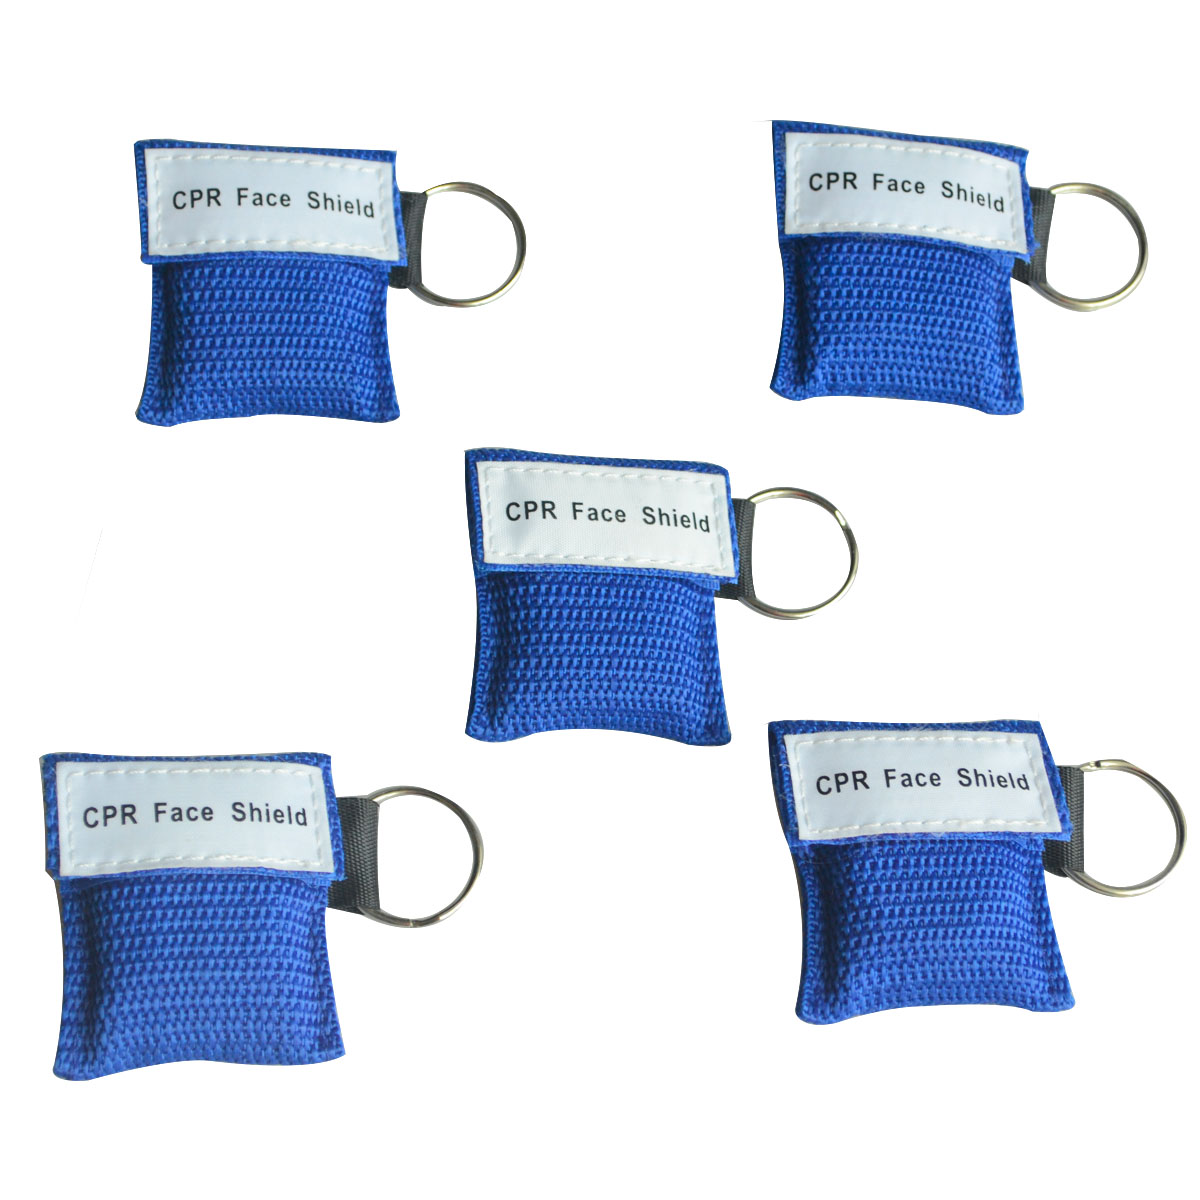 цена на Wholsale 500Pcs/Lot Blue Pouch CPR Resuscitator Mask Keychain First Aid Face Shield CPR Mask For Emergency Rescue Training Use